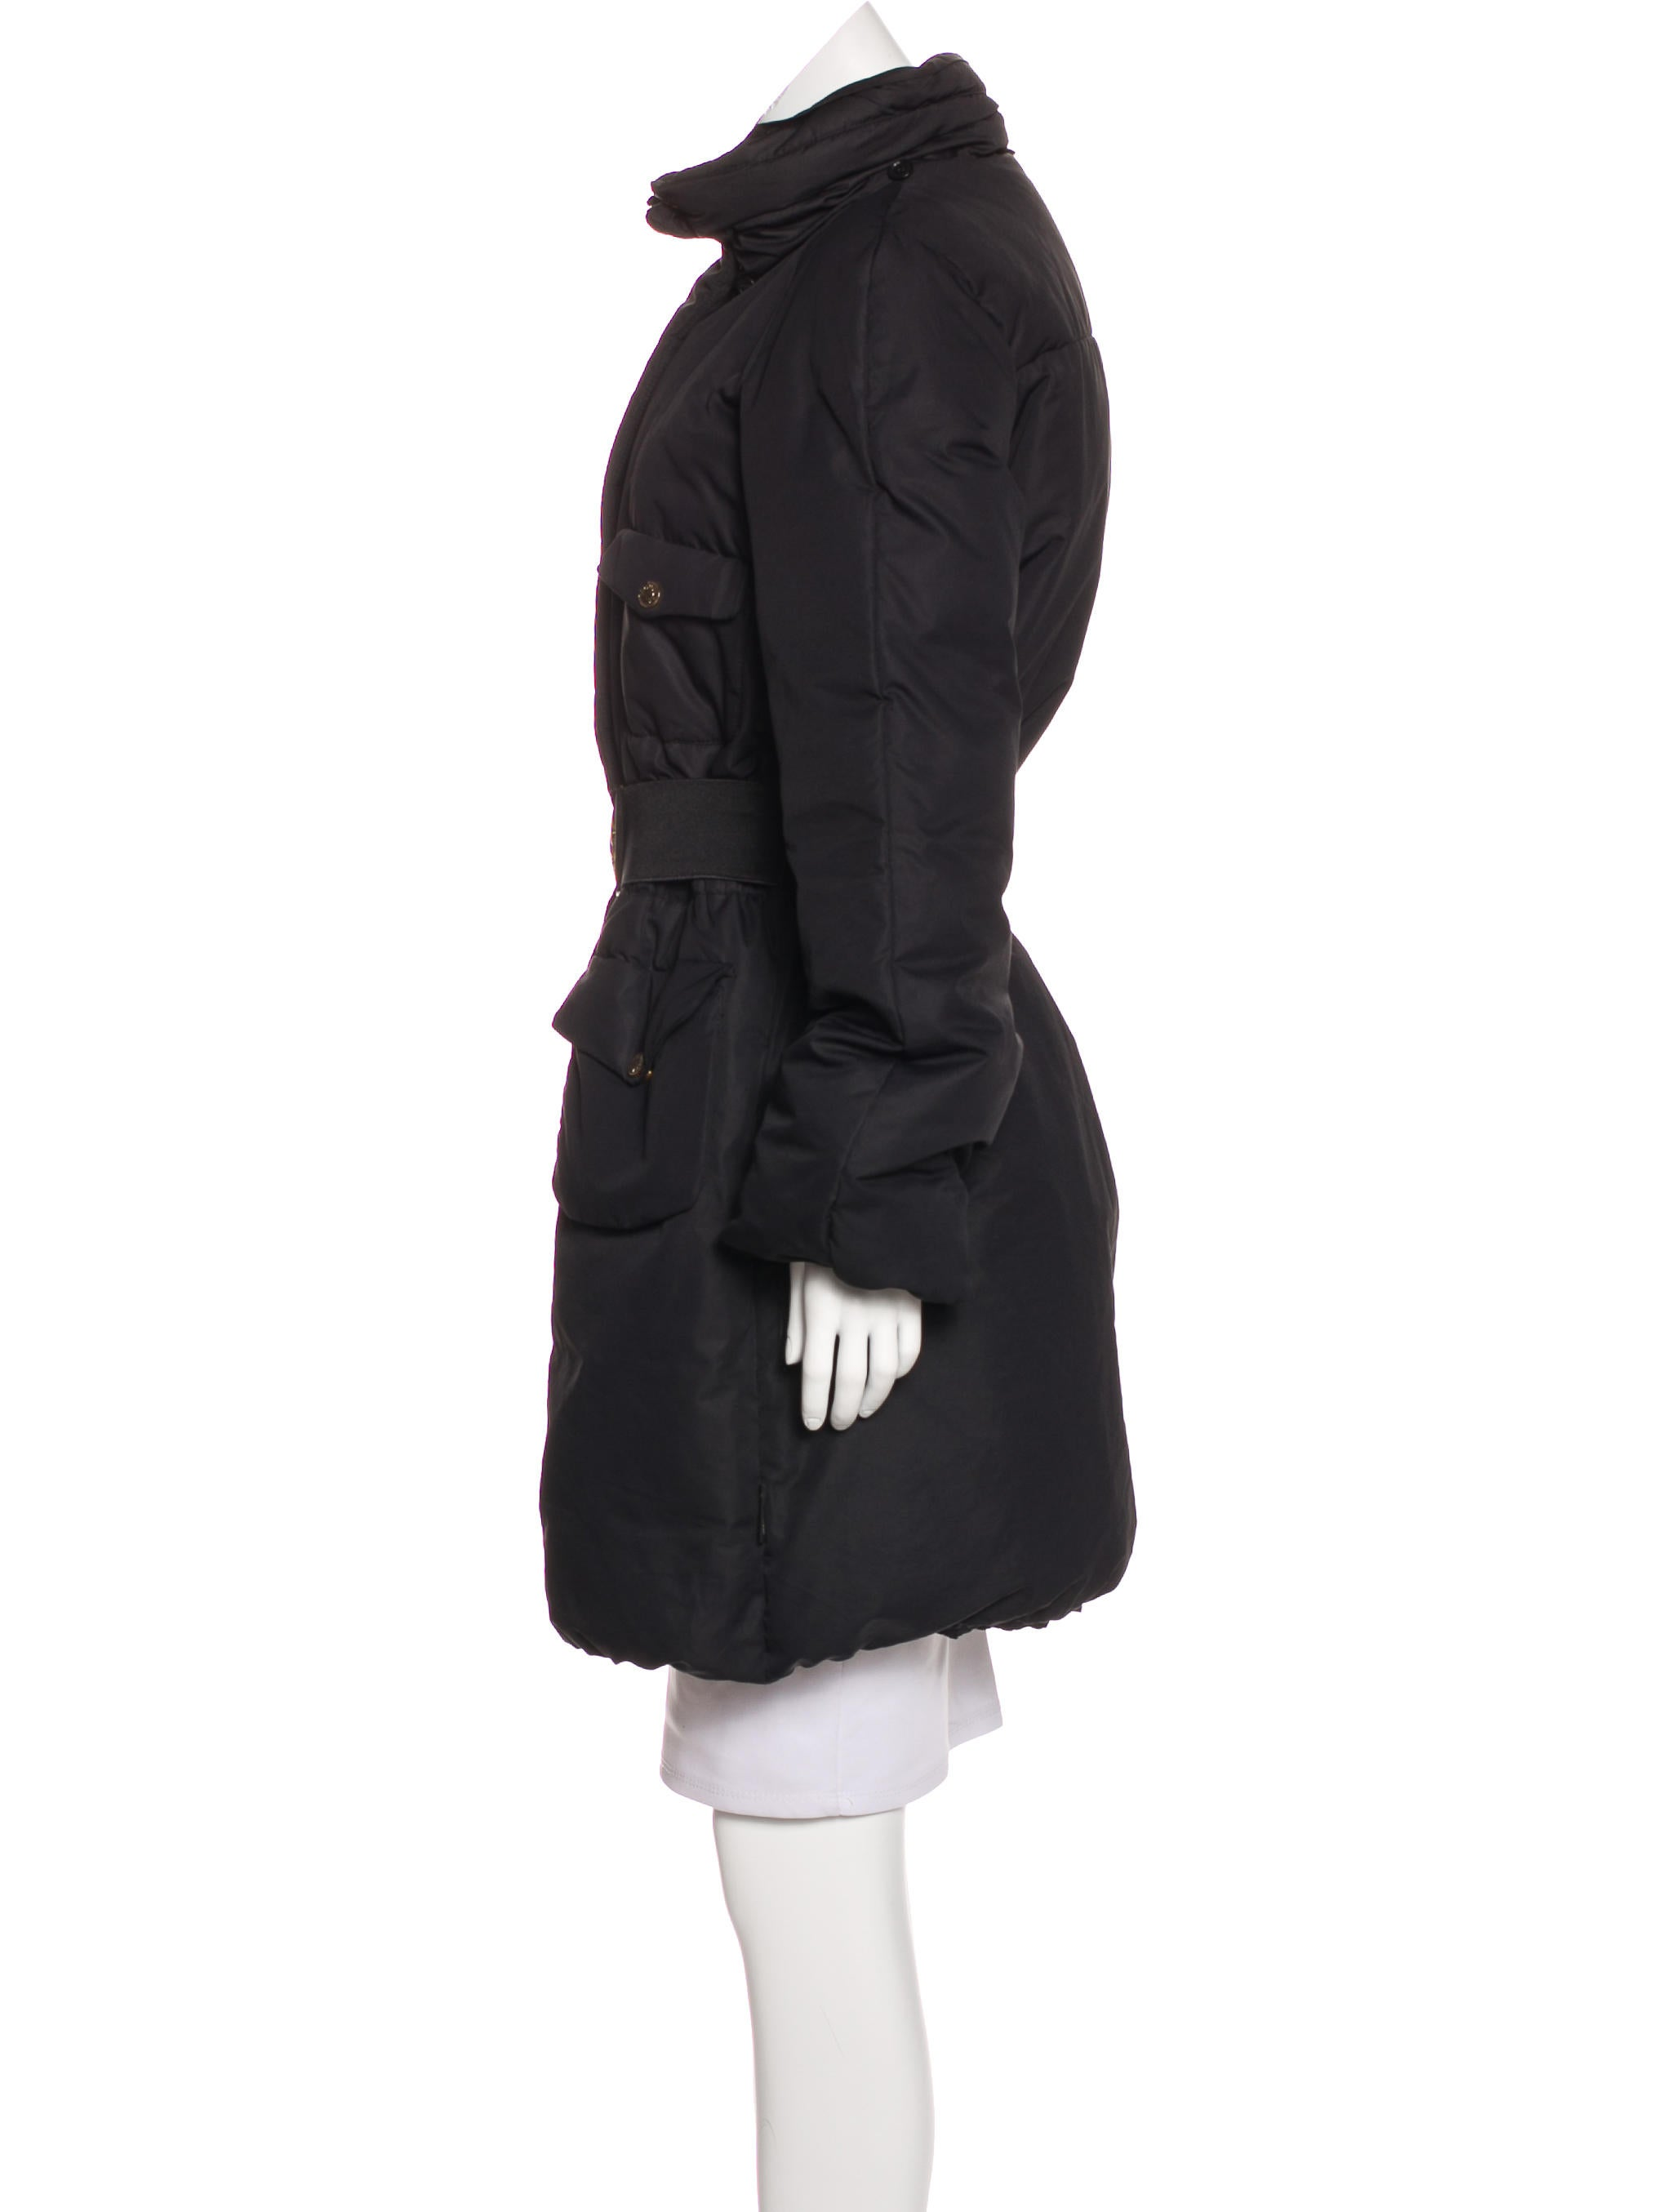 Moncler Melbourne Puffer Coat Clothing Moc26020 The